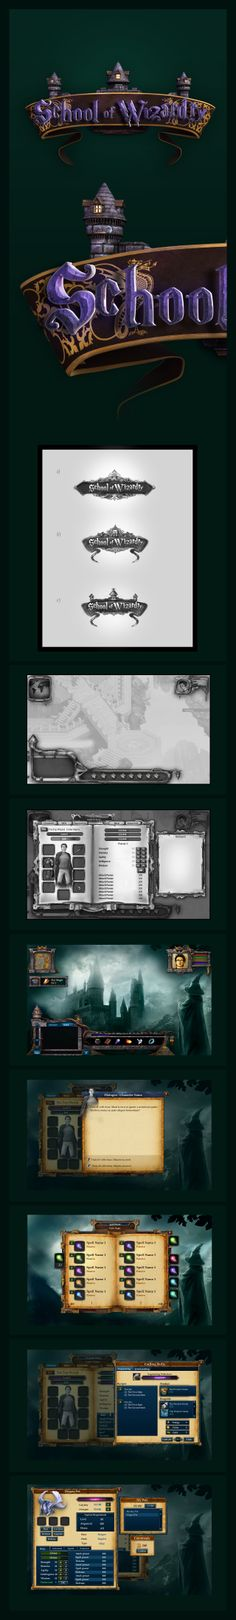 School of Wizardry GUI Game Design by karsten on deviantART